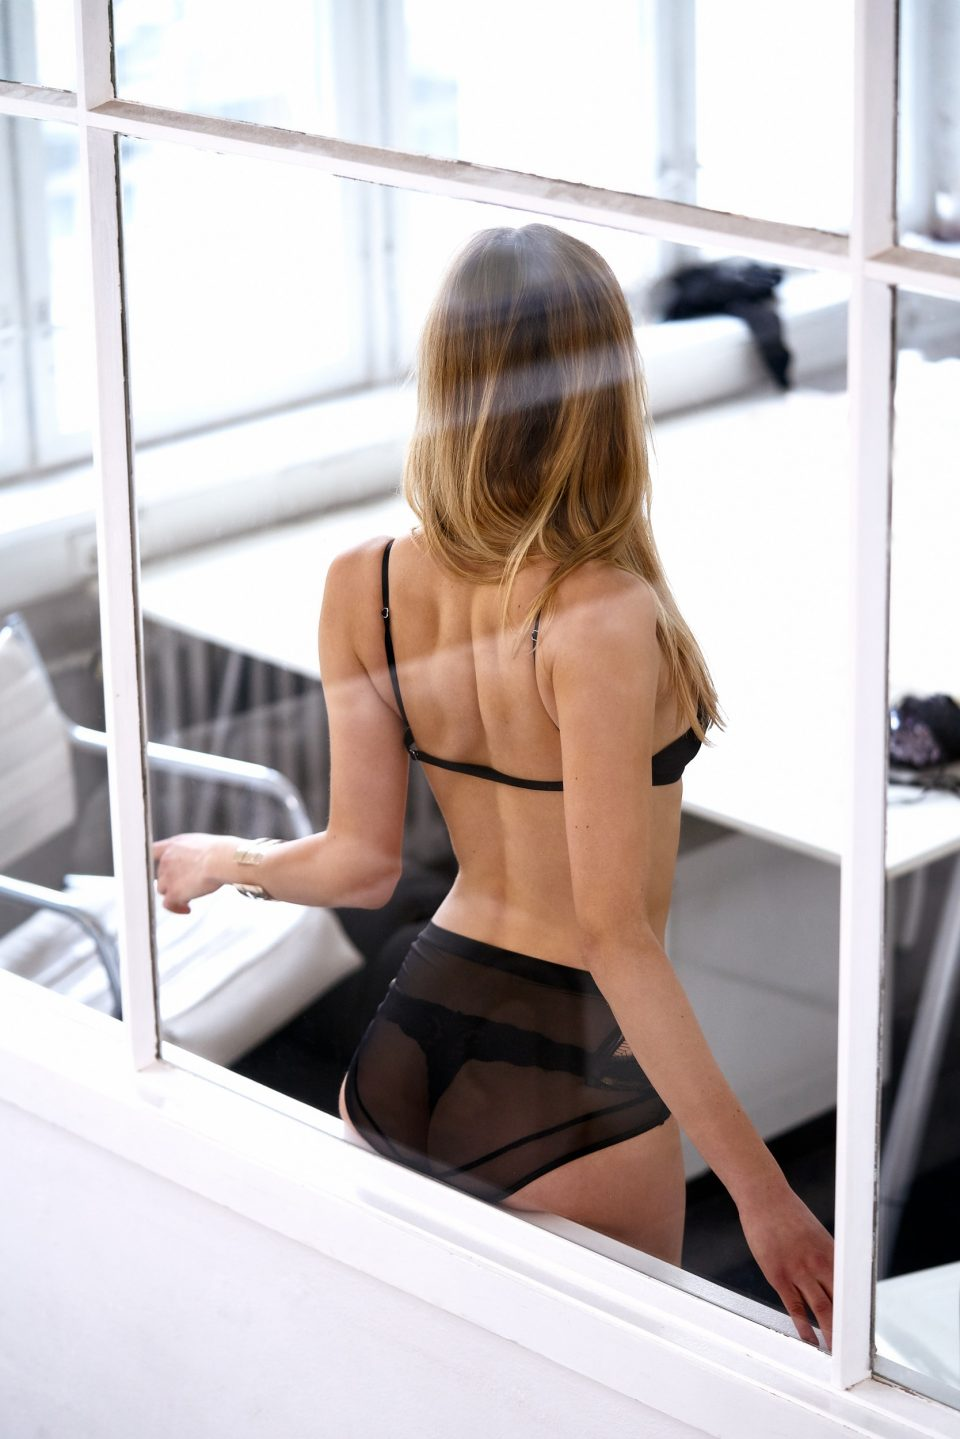 Escortmodel is doing striptease